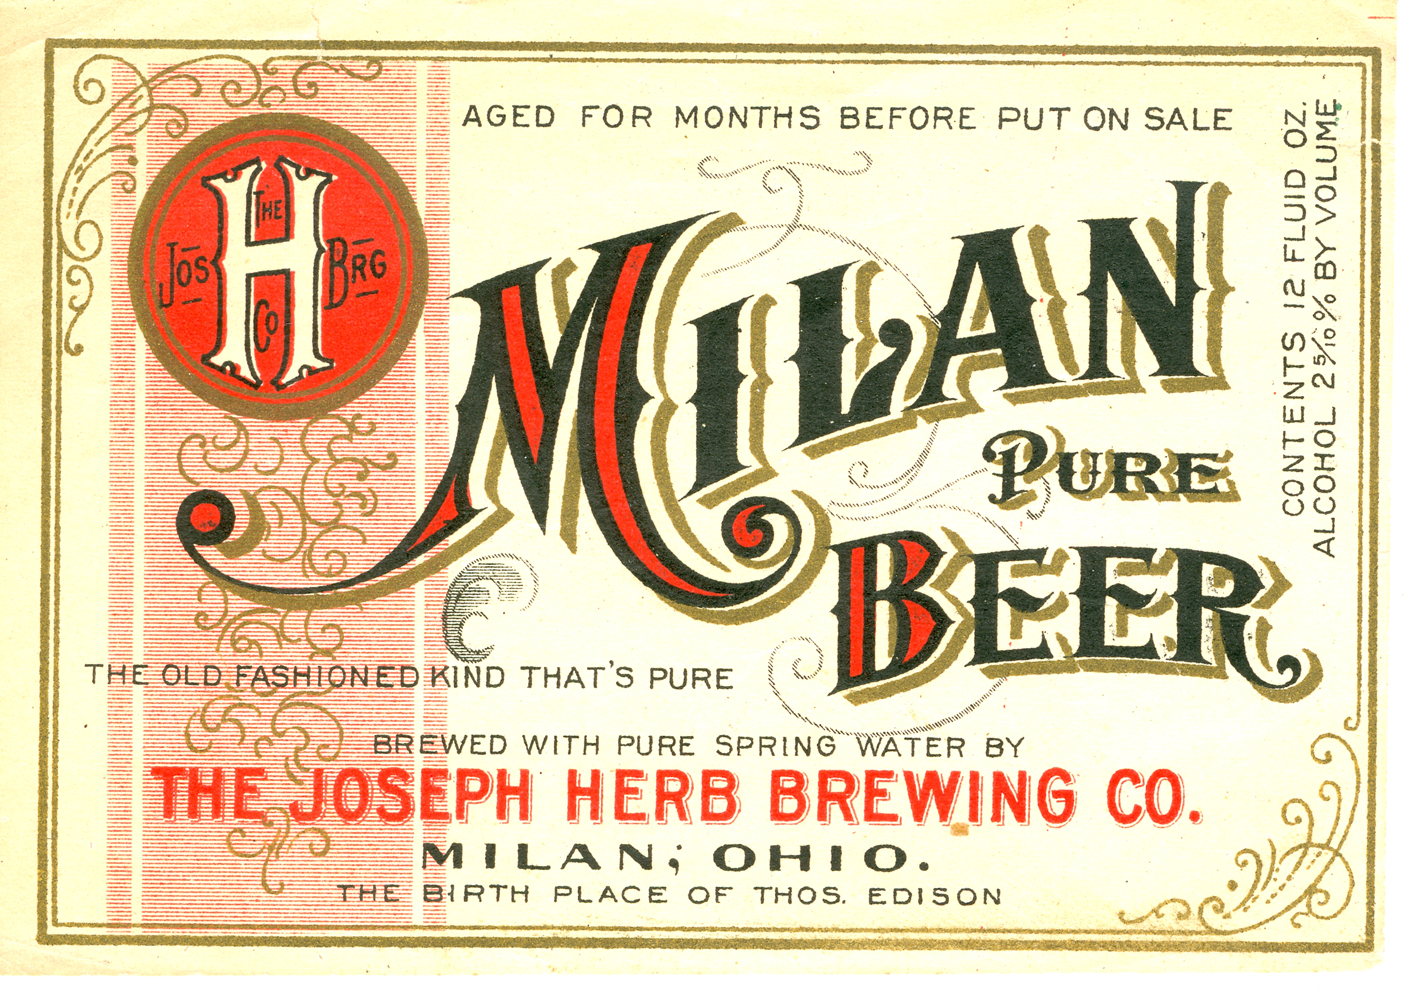 "Brewing beer in Milan began in the 1850s with John Schell. At the turn of the century, The Joseph Herb Brewing Co. was followed by The Milan Brewing Co., and it began brewing ""Milan Pure Beer"". The Milan Brewing Company continued brewing prize-winning beers for many years. Prohibition temporarily killed the craft and the company converted to a mushroom plant. After the repeal of prohibition, brewing was back until it went out of business in the 1950s. The still-standing structure now operates as the Growers Chemical Corporation."